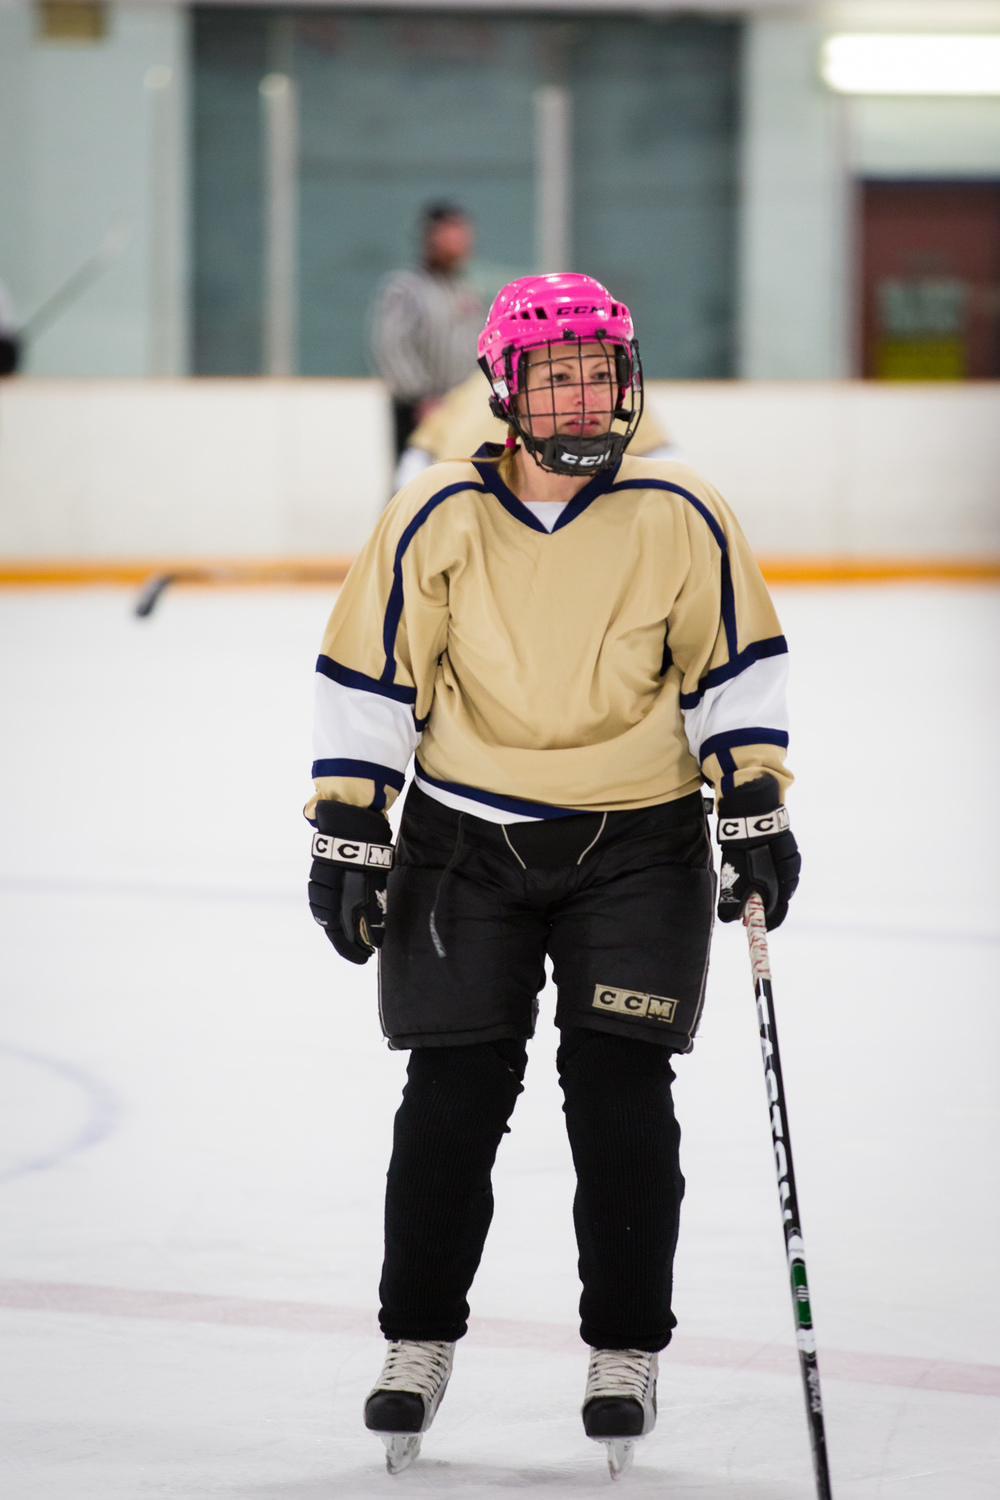 GrenfellCharityHockeyGame2016-April5-2016-27.jpg